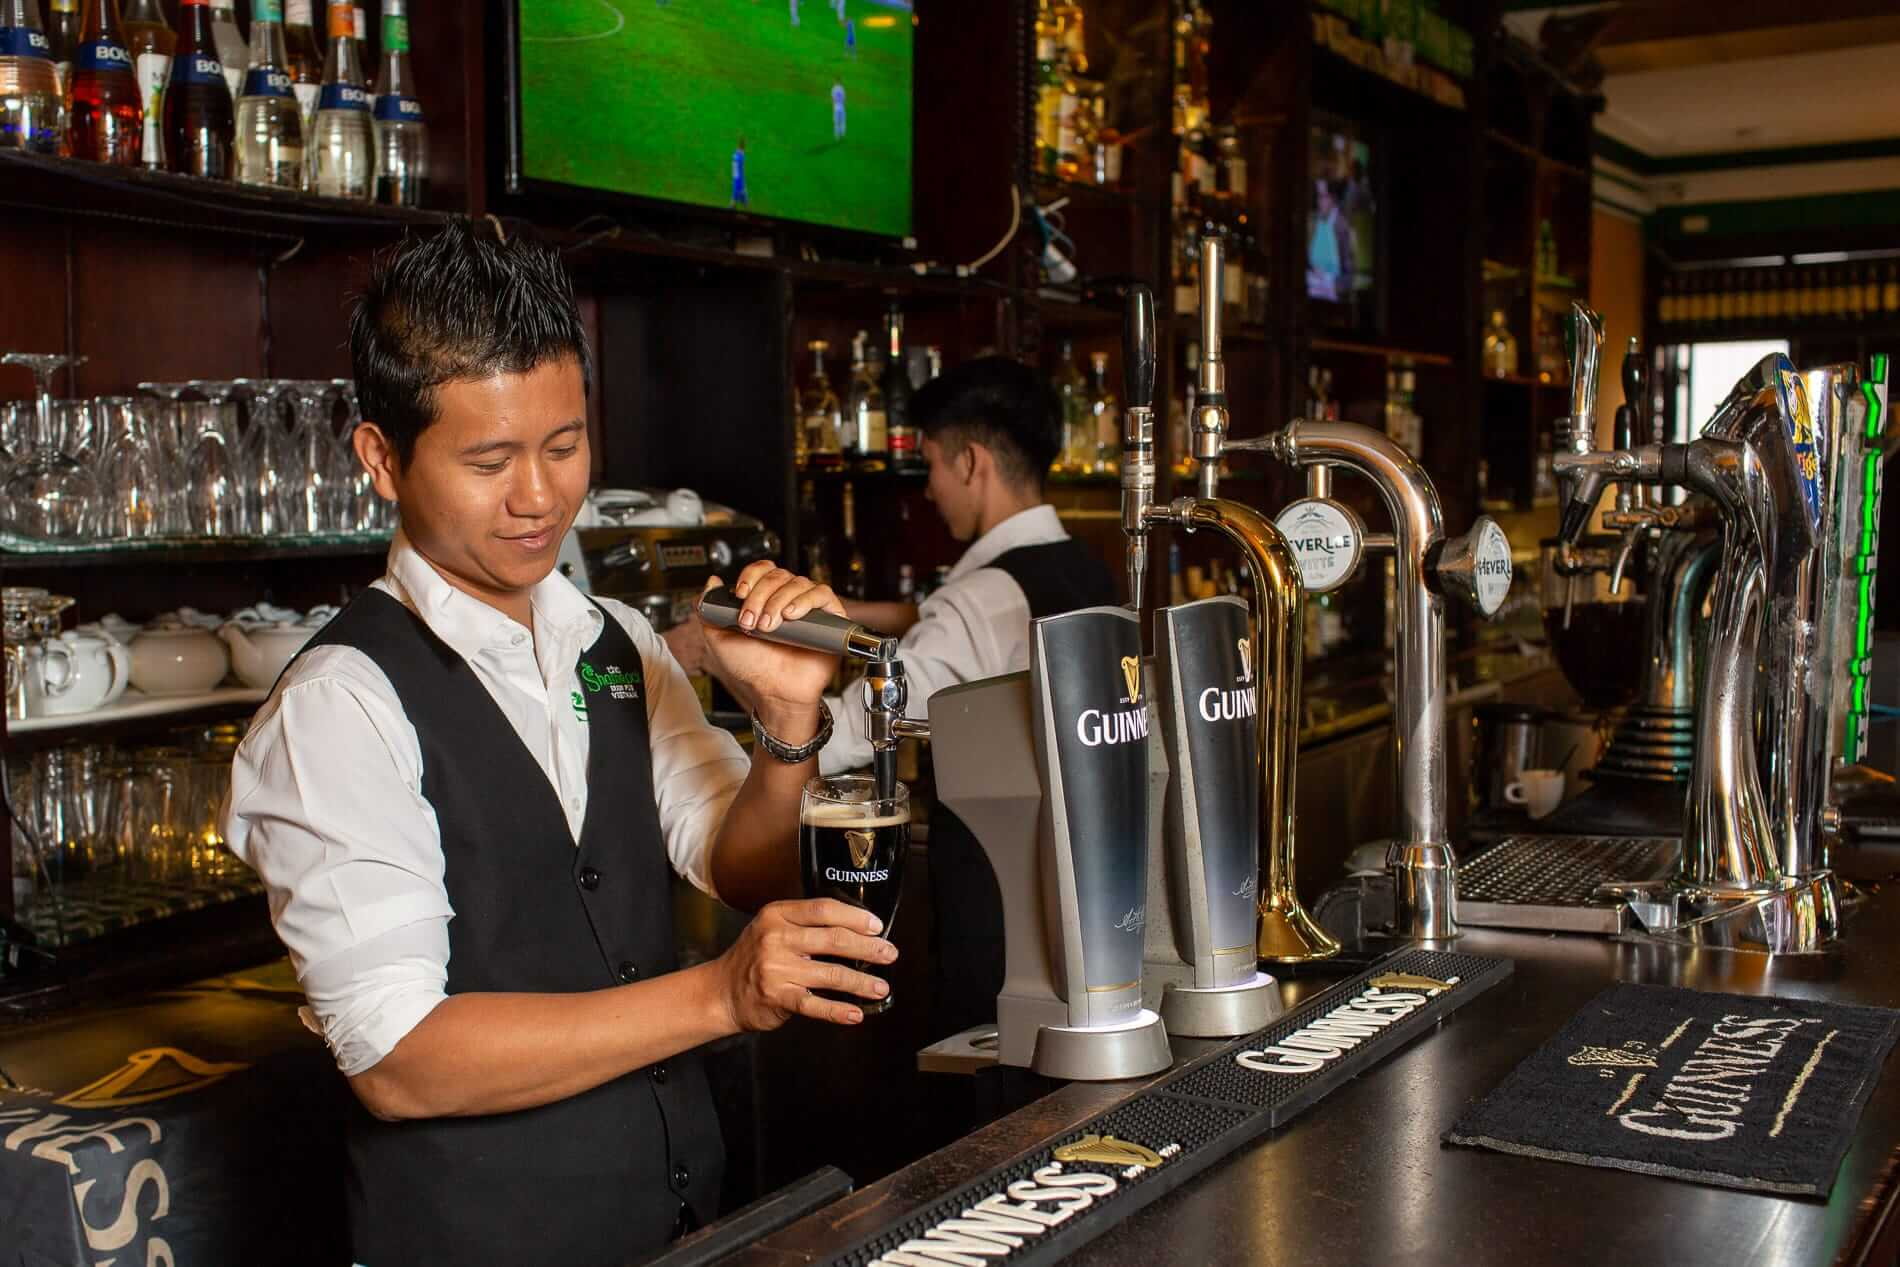 A draft Guinness being poured in Vietnam